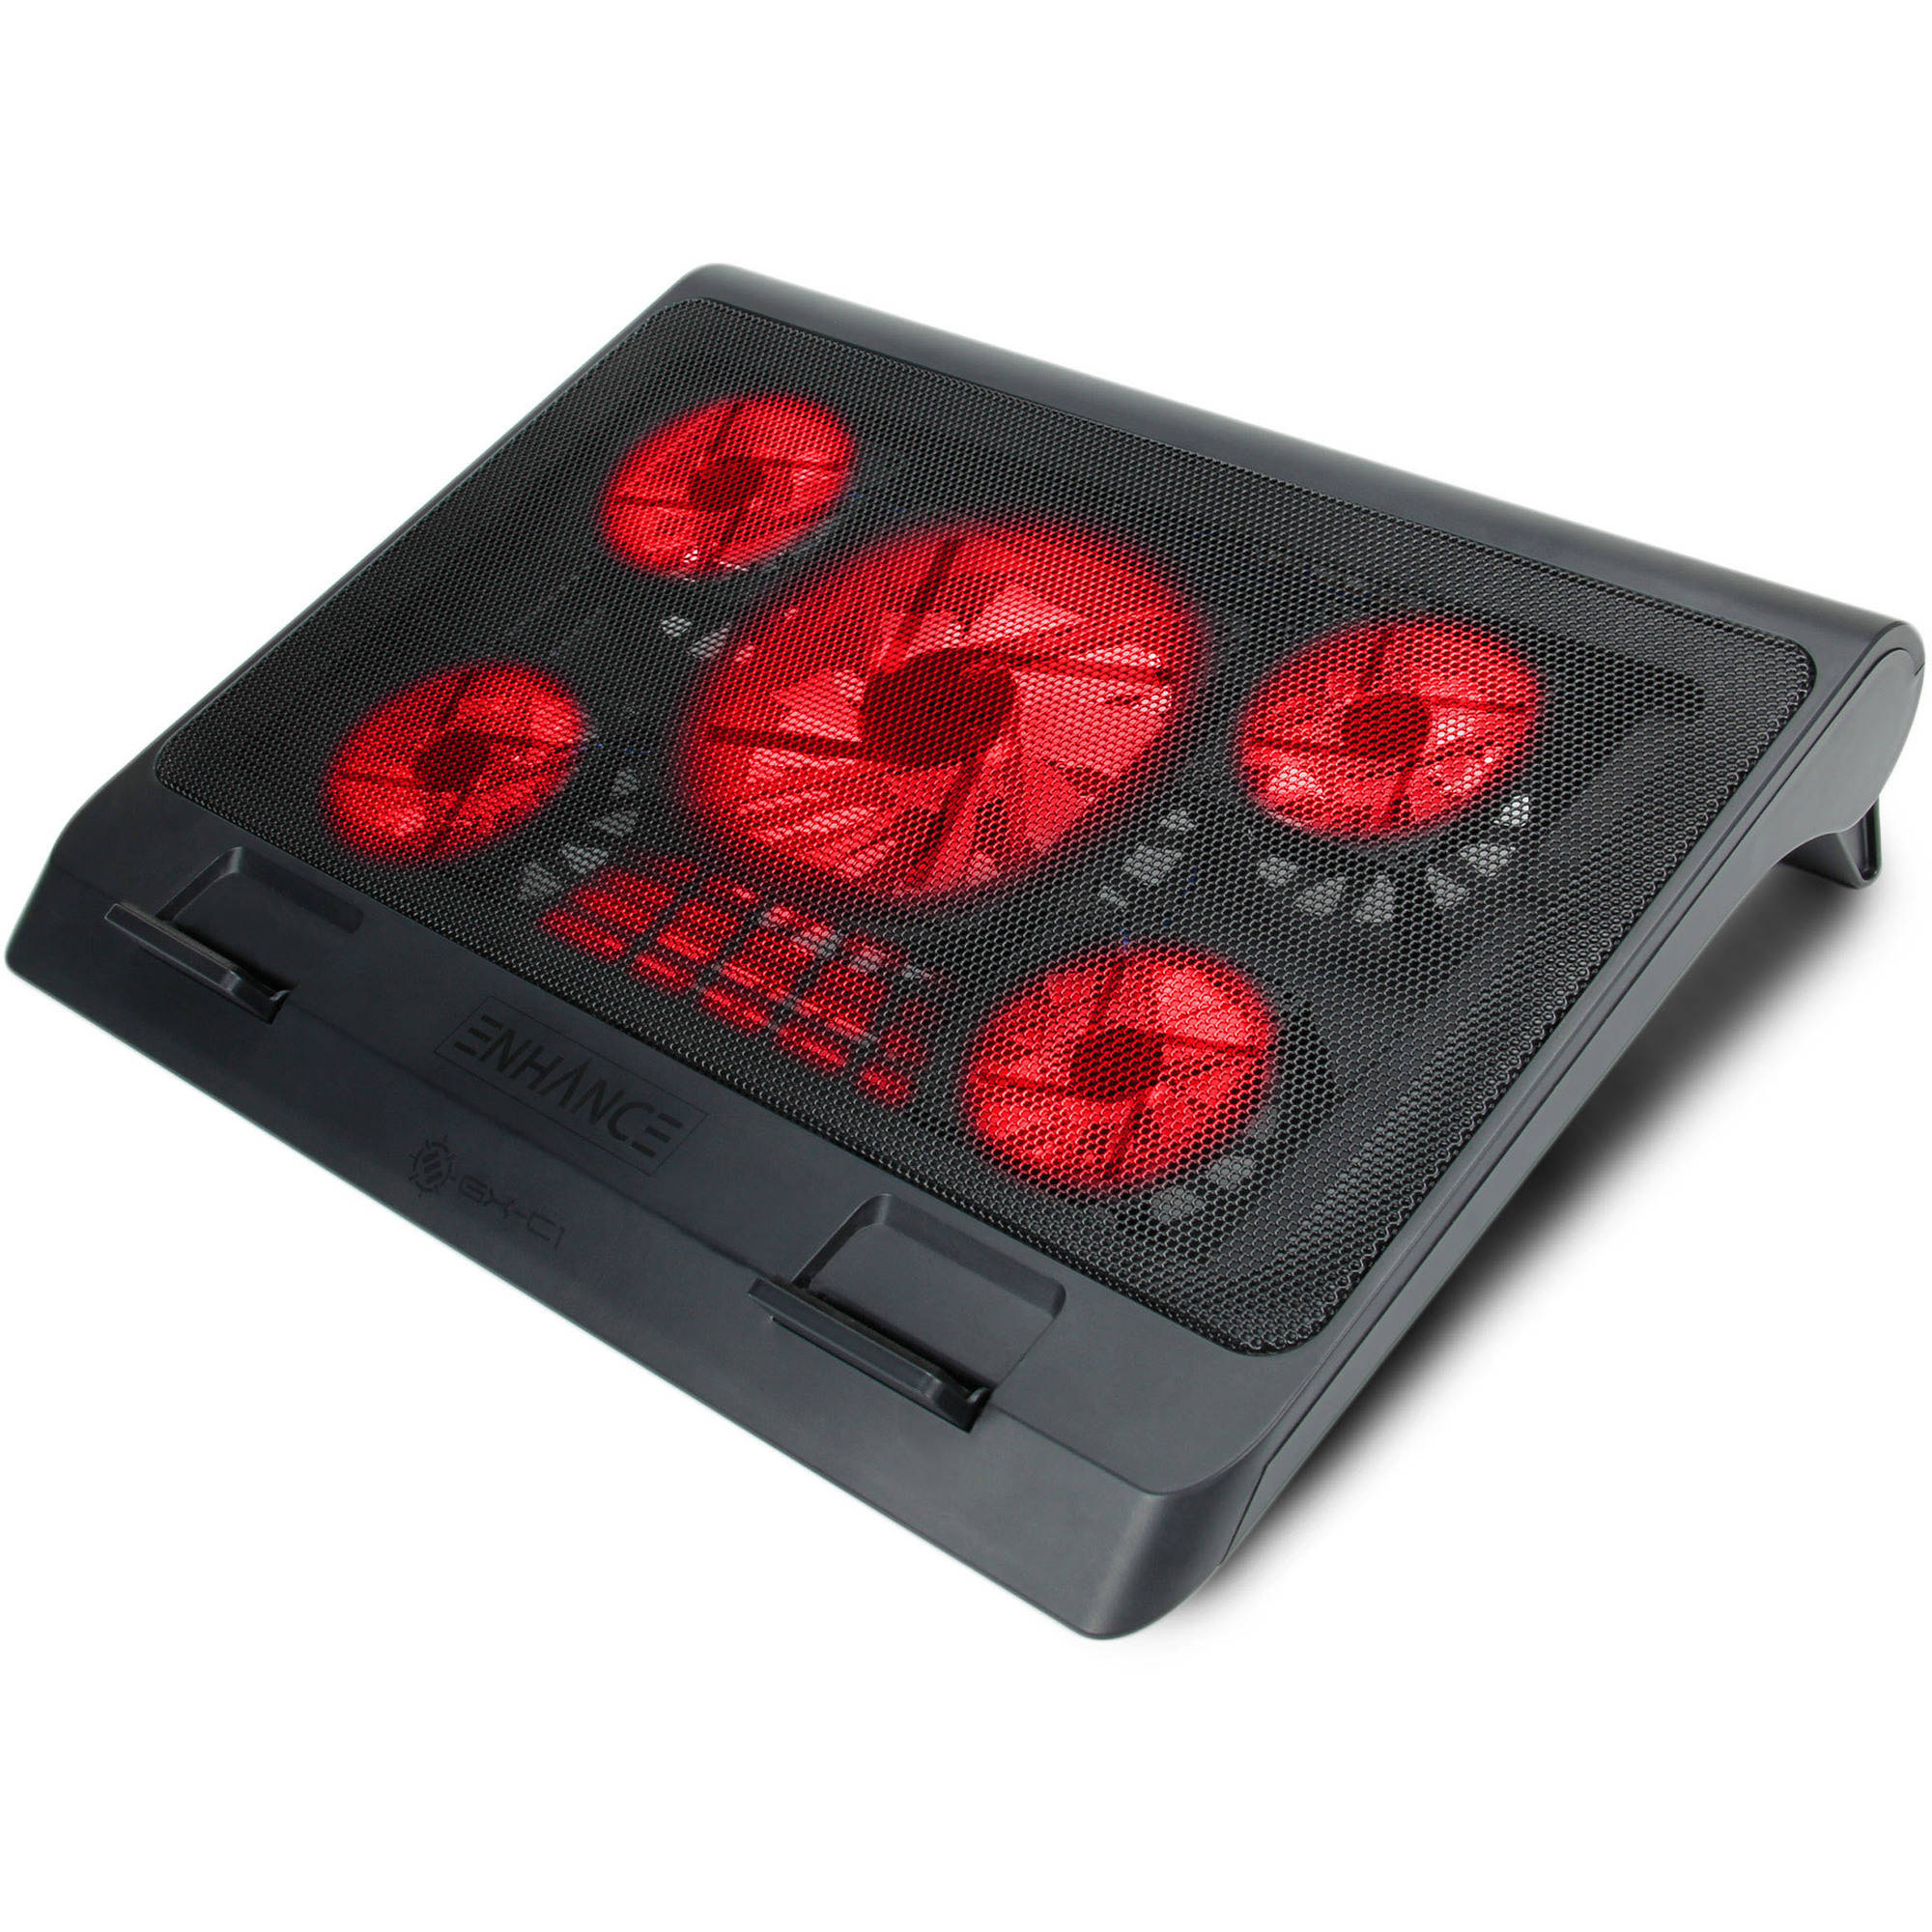 ENHANCE XL Gaming Laptop Cooler Pad with 5 Oversized LED Fans for Max Cooling , Adjustable Viewing Stand , 2... by Alienware